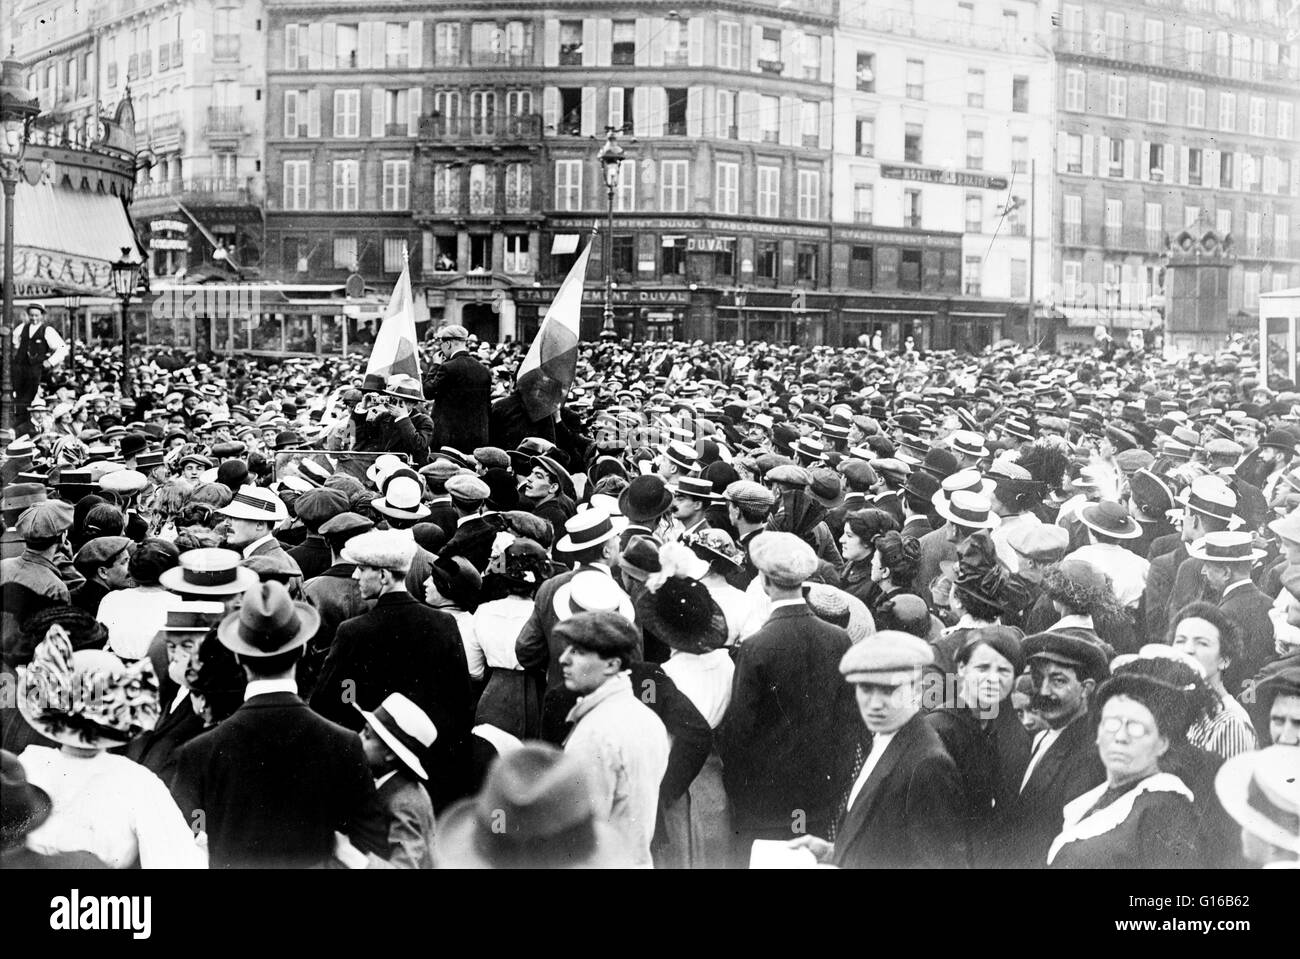 French reservists and crowd at the Gare de Paris-Est (train station), Paris during the beginning of World War I. - Stock Image